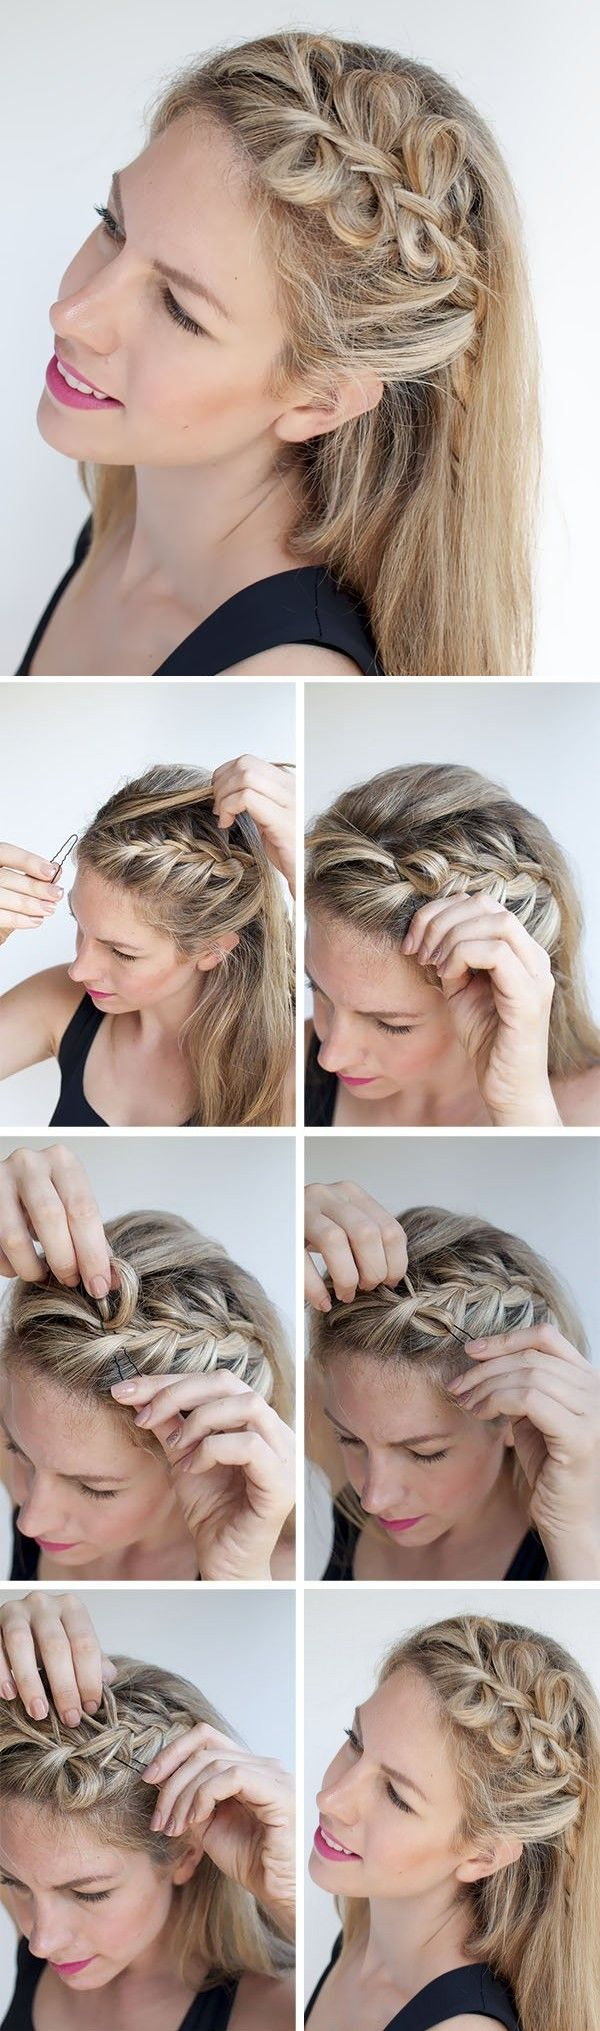 Best 25+ 5 minute hairstyles ideas only on Pinterest ...